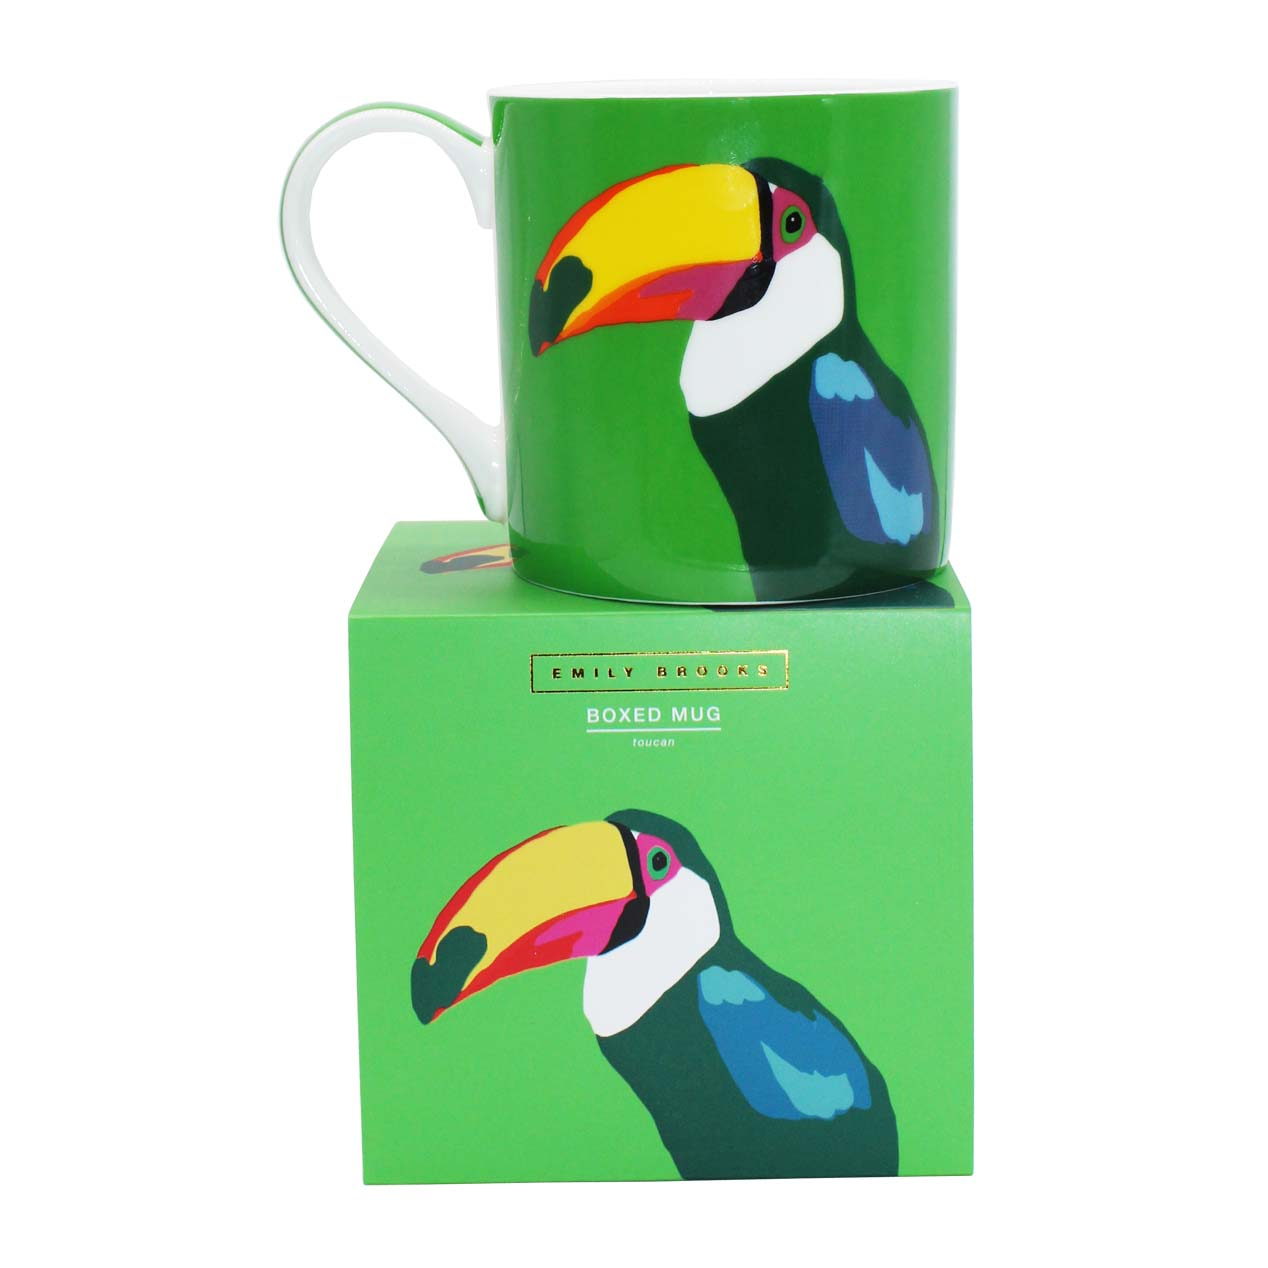 Emily Brooks Boxed Mug Toucan Sparkle Gift